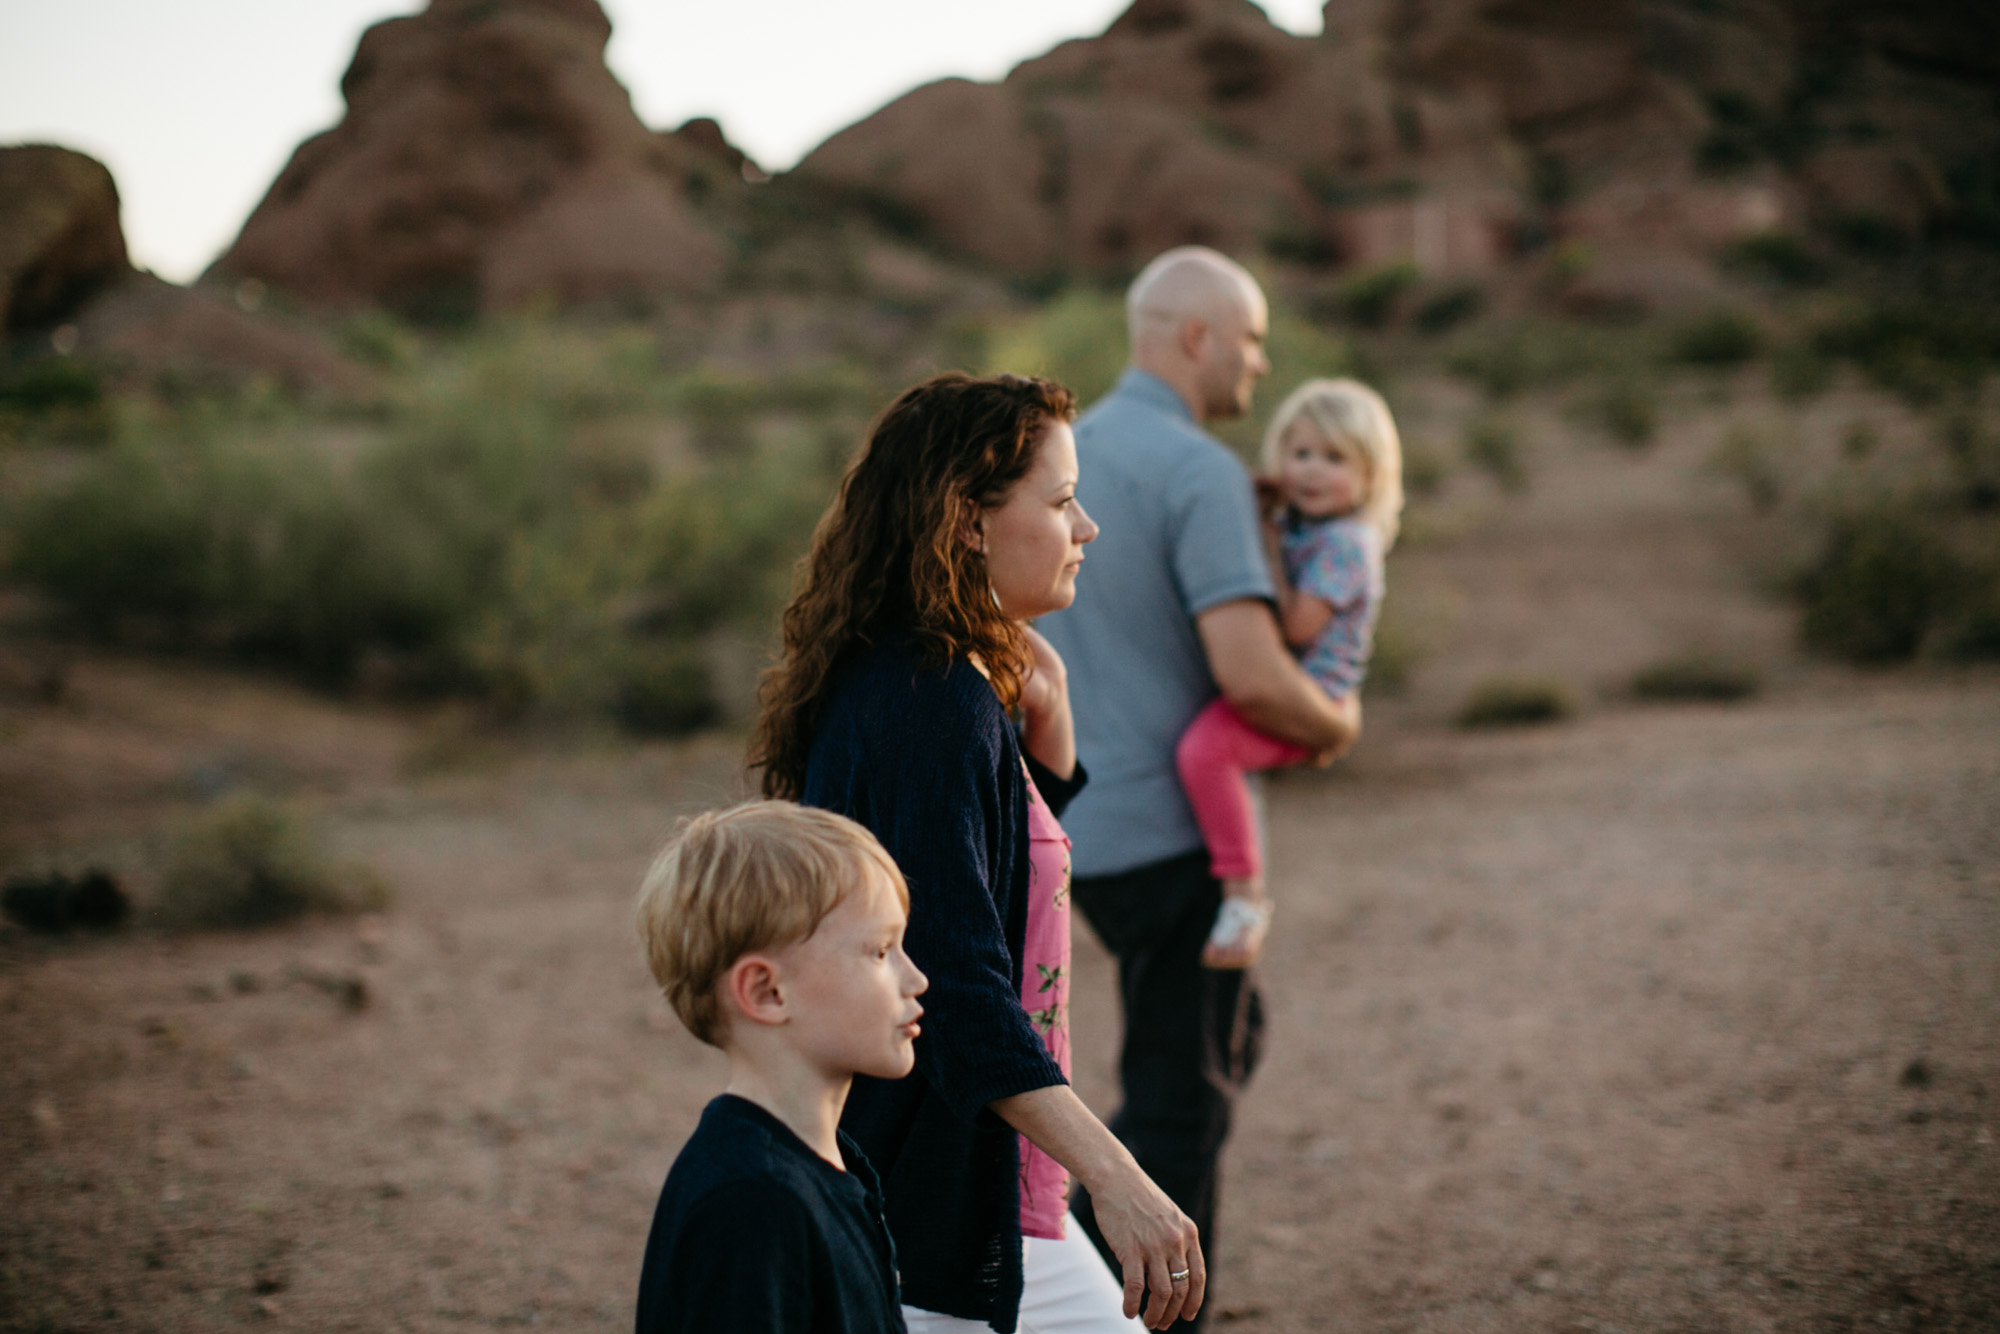 scottsdale-family-lifestyle-photographer-34.jpg